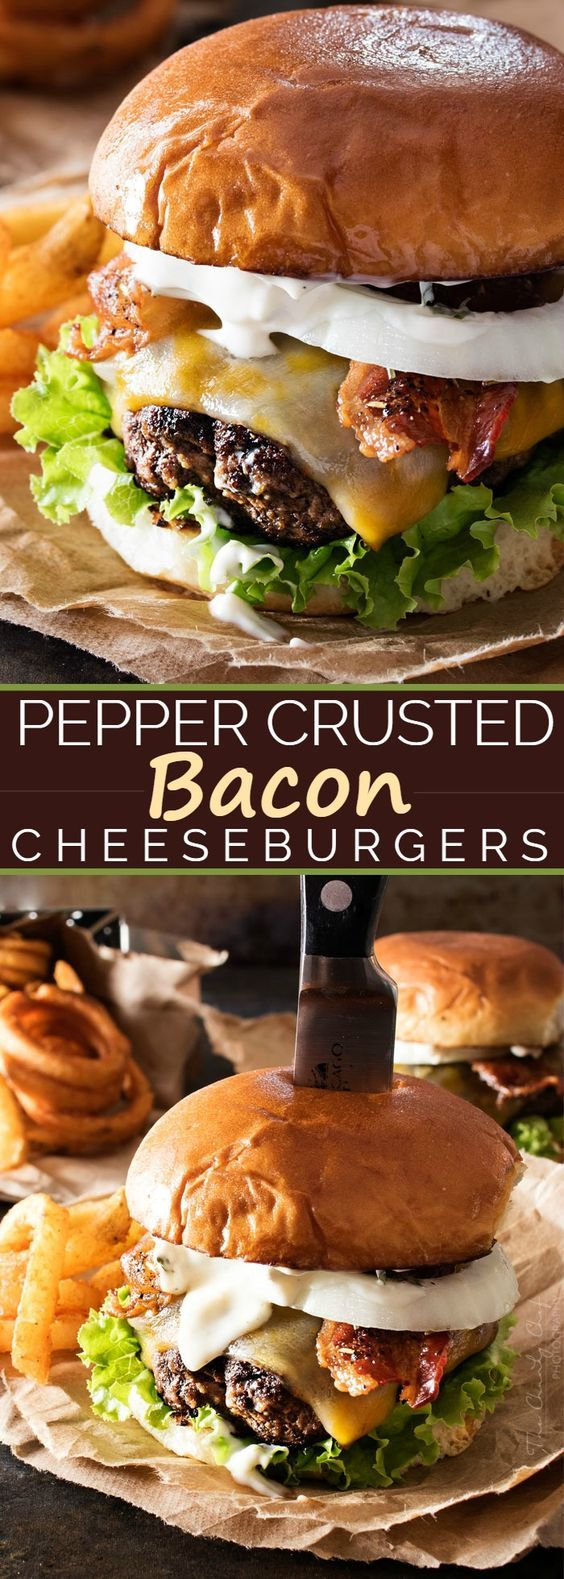 Hamburger Recipes - Pepper Crusted Bacon Cheeseburgers slathered with a garlic aioli - Grill these up tonite - so delicious - via The Chunky Chef #burgers #gourmetburgers #burgerrecipes #cookouts #grilling #barbecue #hamburgers #fathersday #fathersdayfood #bbq #partyfood #tailgating #superbowlfood #superbowl #summerfood #easylunches #easydinners #easysuppers